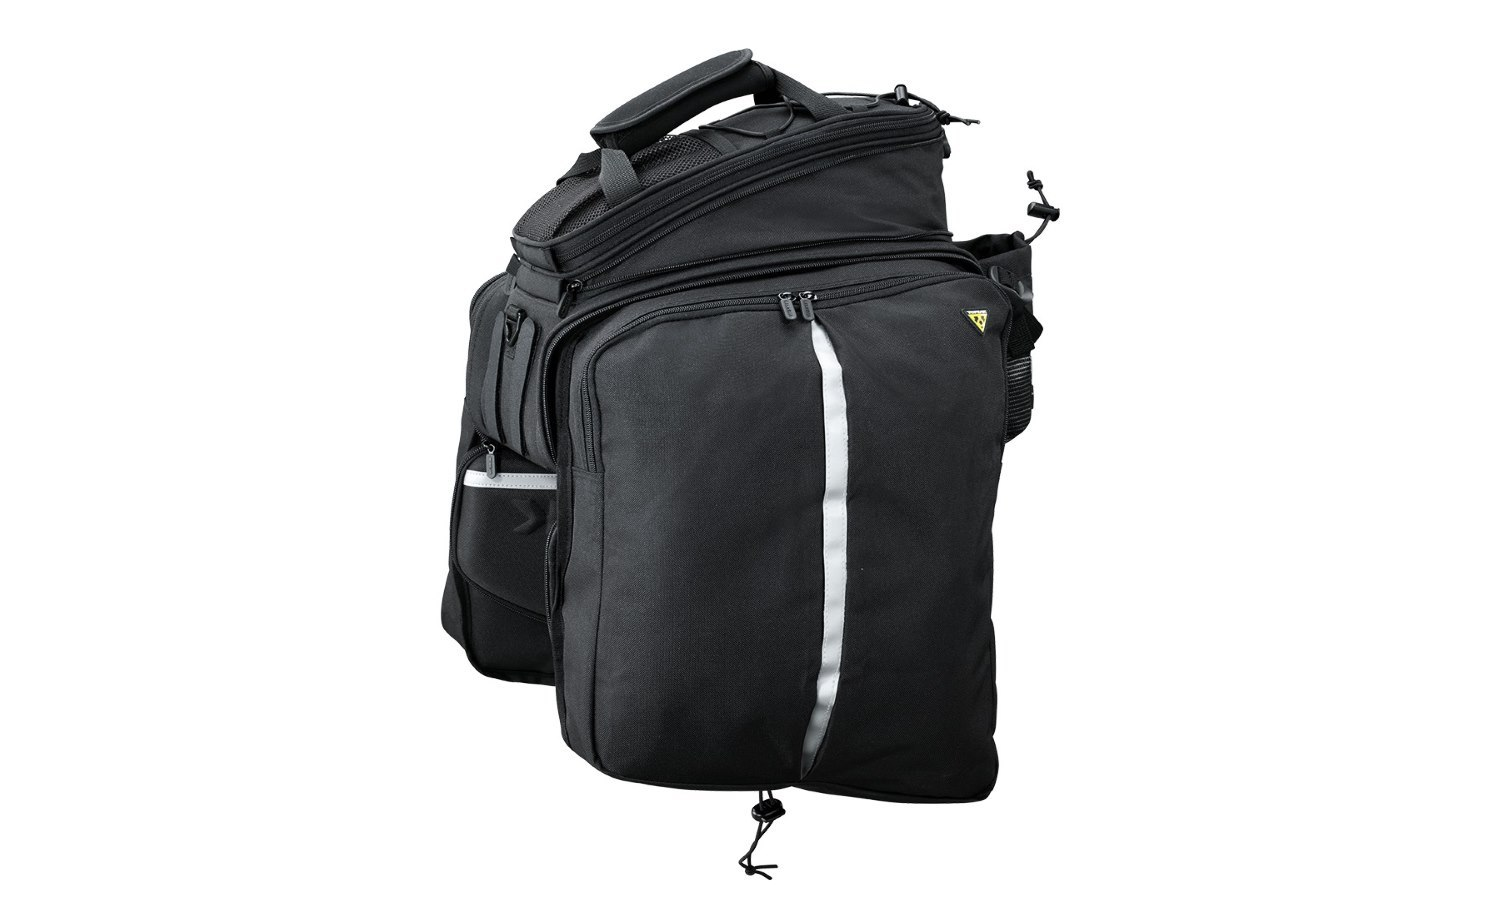 Topeak Bicycle Trunk Bag DXP with Rigid Molded Panels - Strap Mount 22.6L